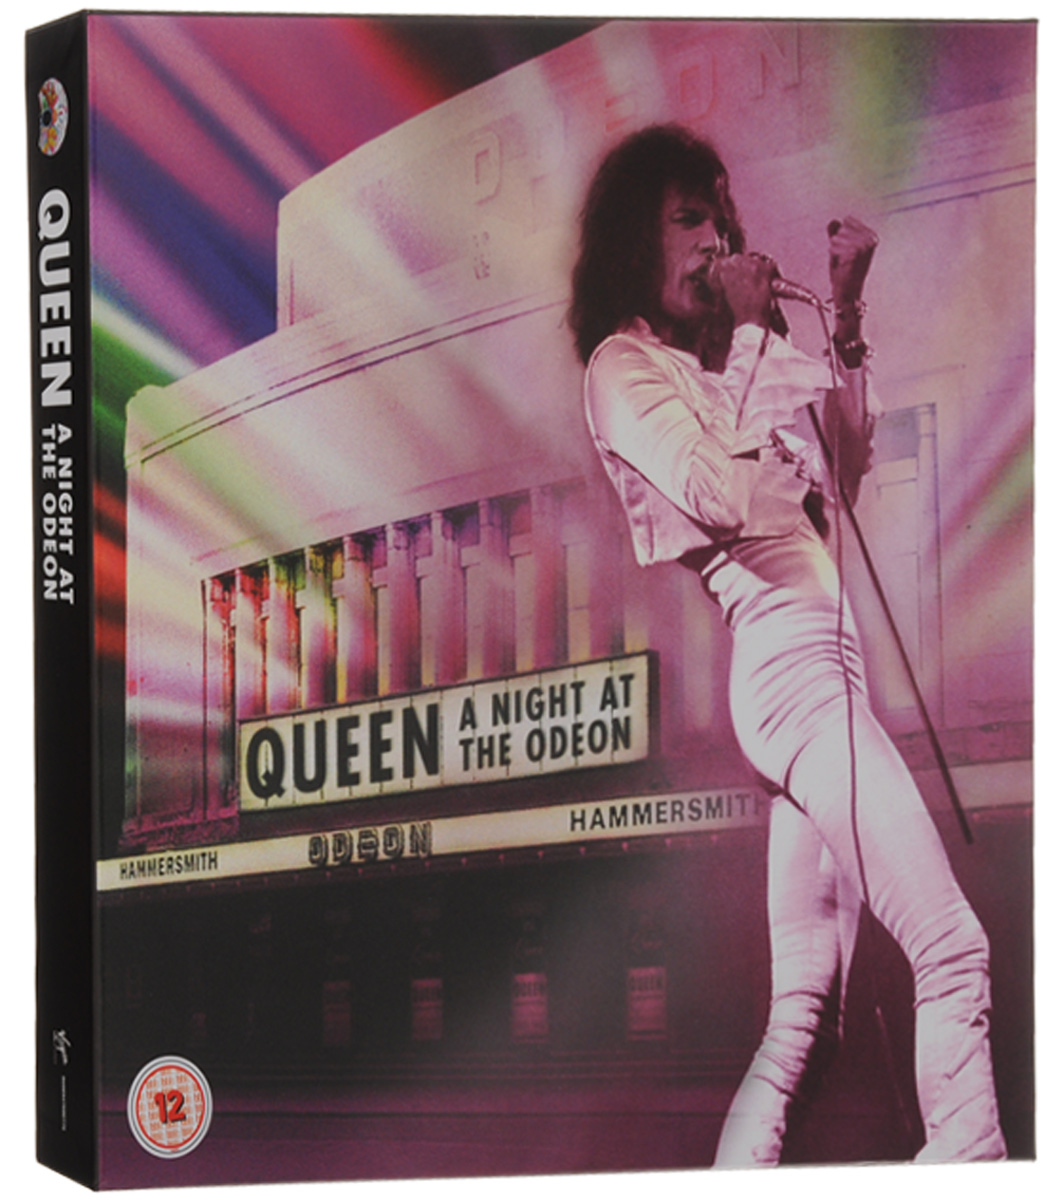 """Queen"" Queen. A Night At The Odeon. Anniversary Limited Edition (CD + LP + DVD + Blu-ray)"